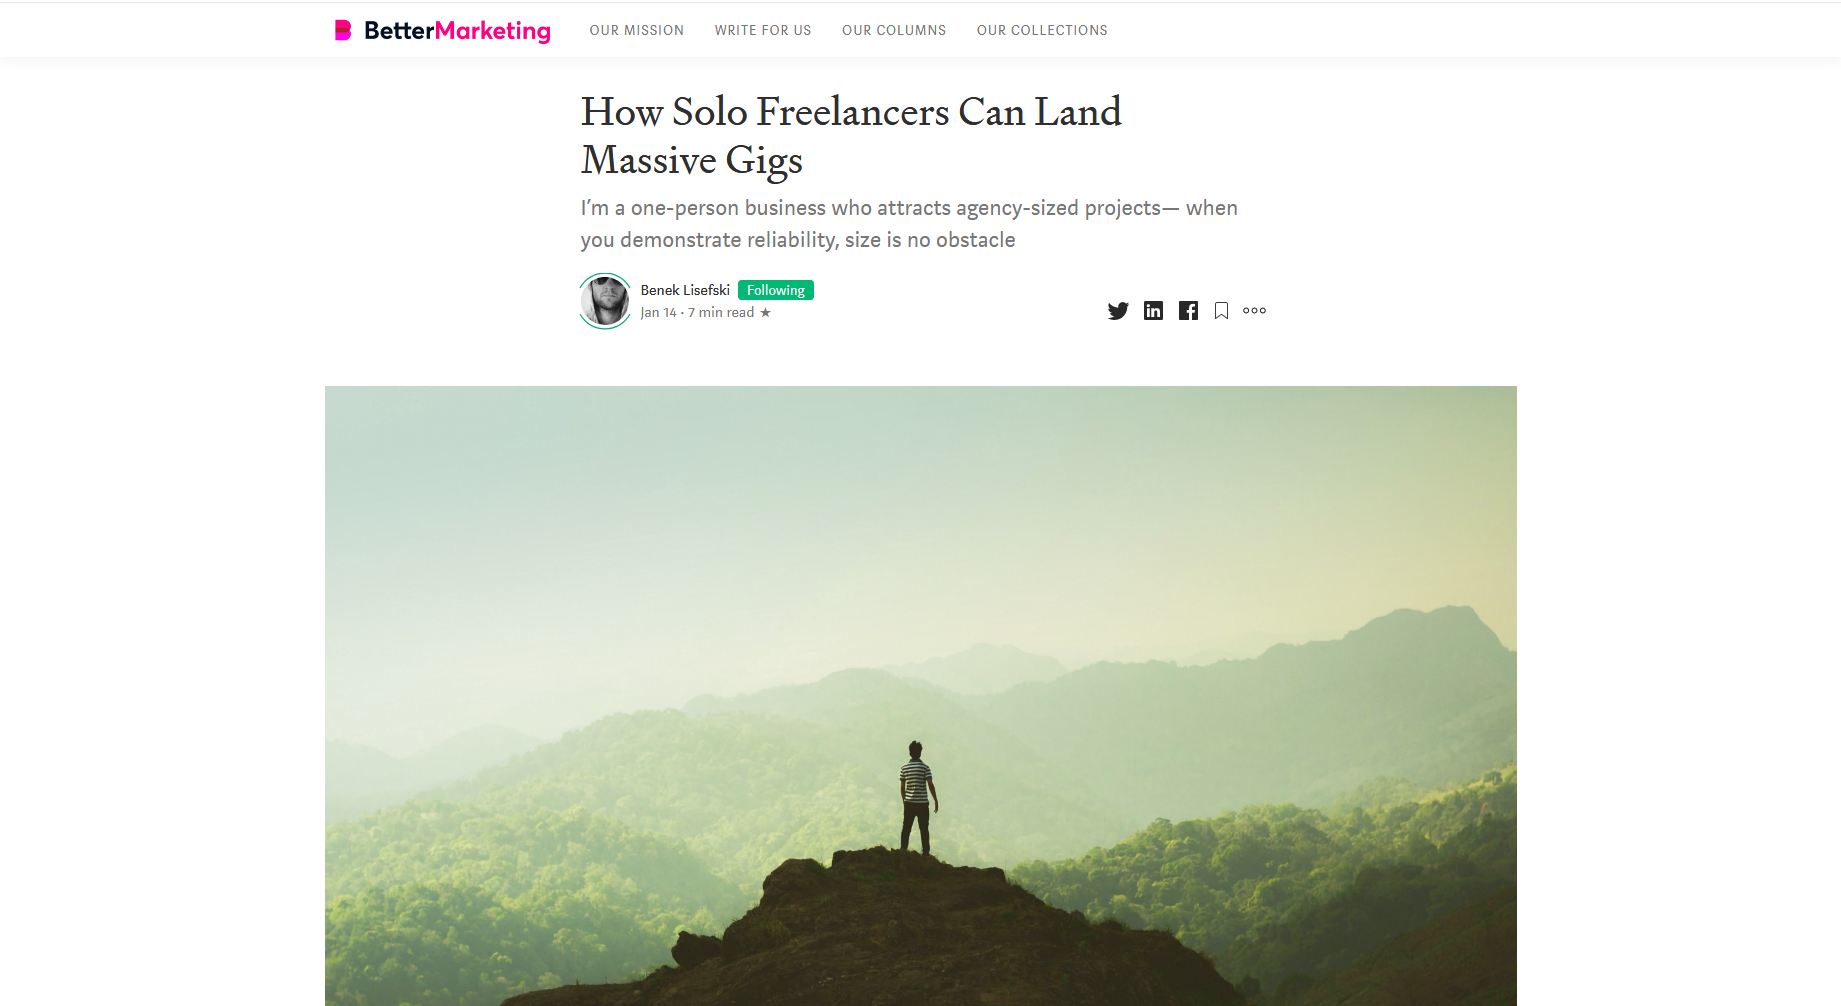 How Solo Freelancers Can Land Massive Gigs — Better Marketing